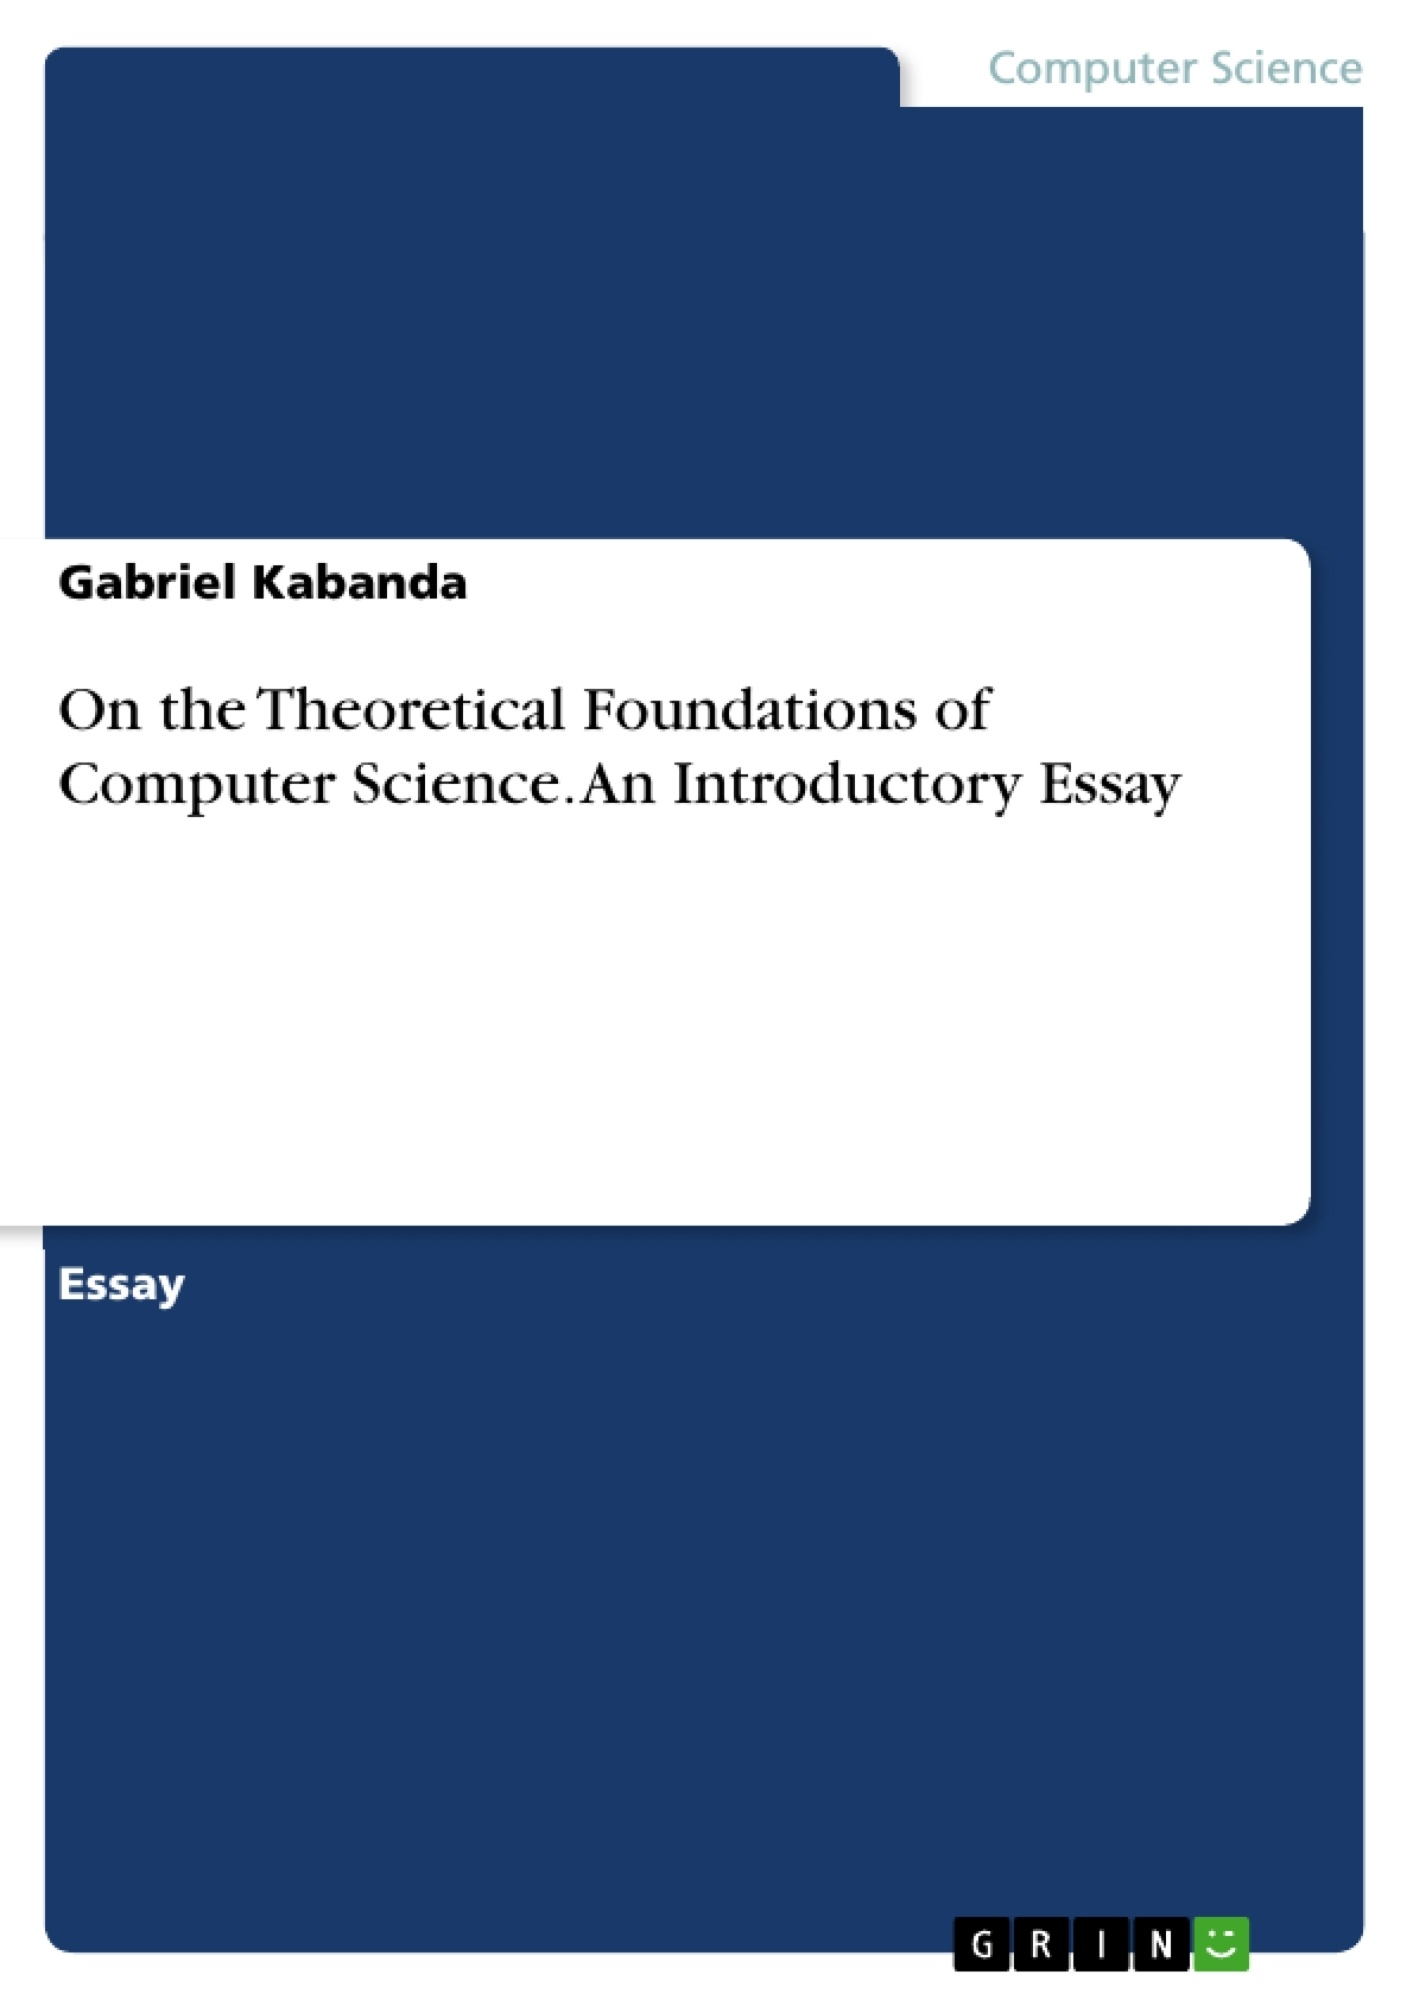 Title: On the Theoretical Foundations of Computer Science. An Introductory Essay